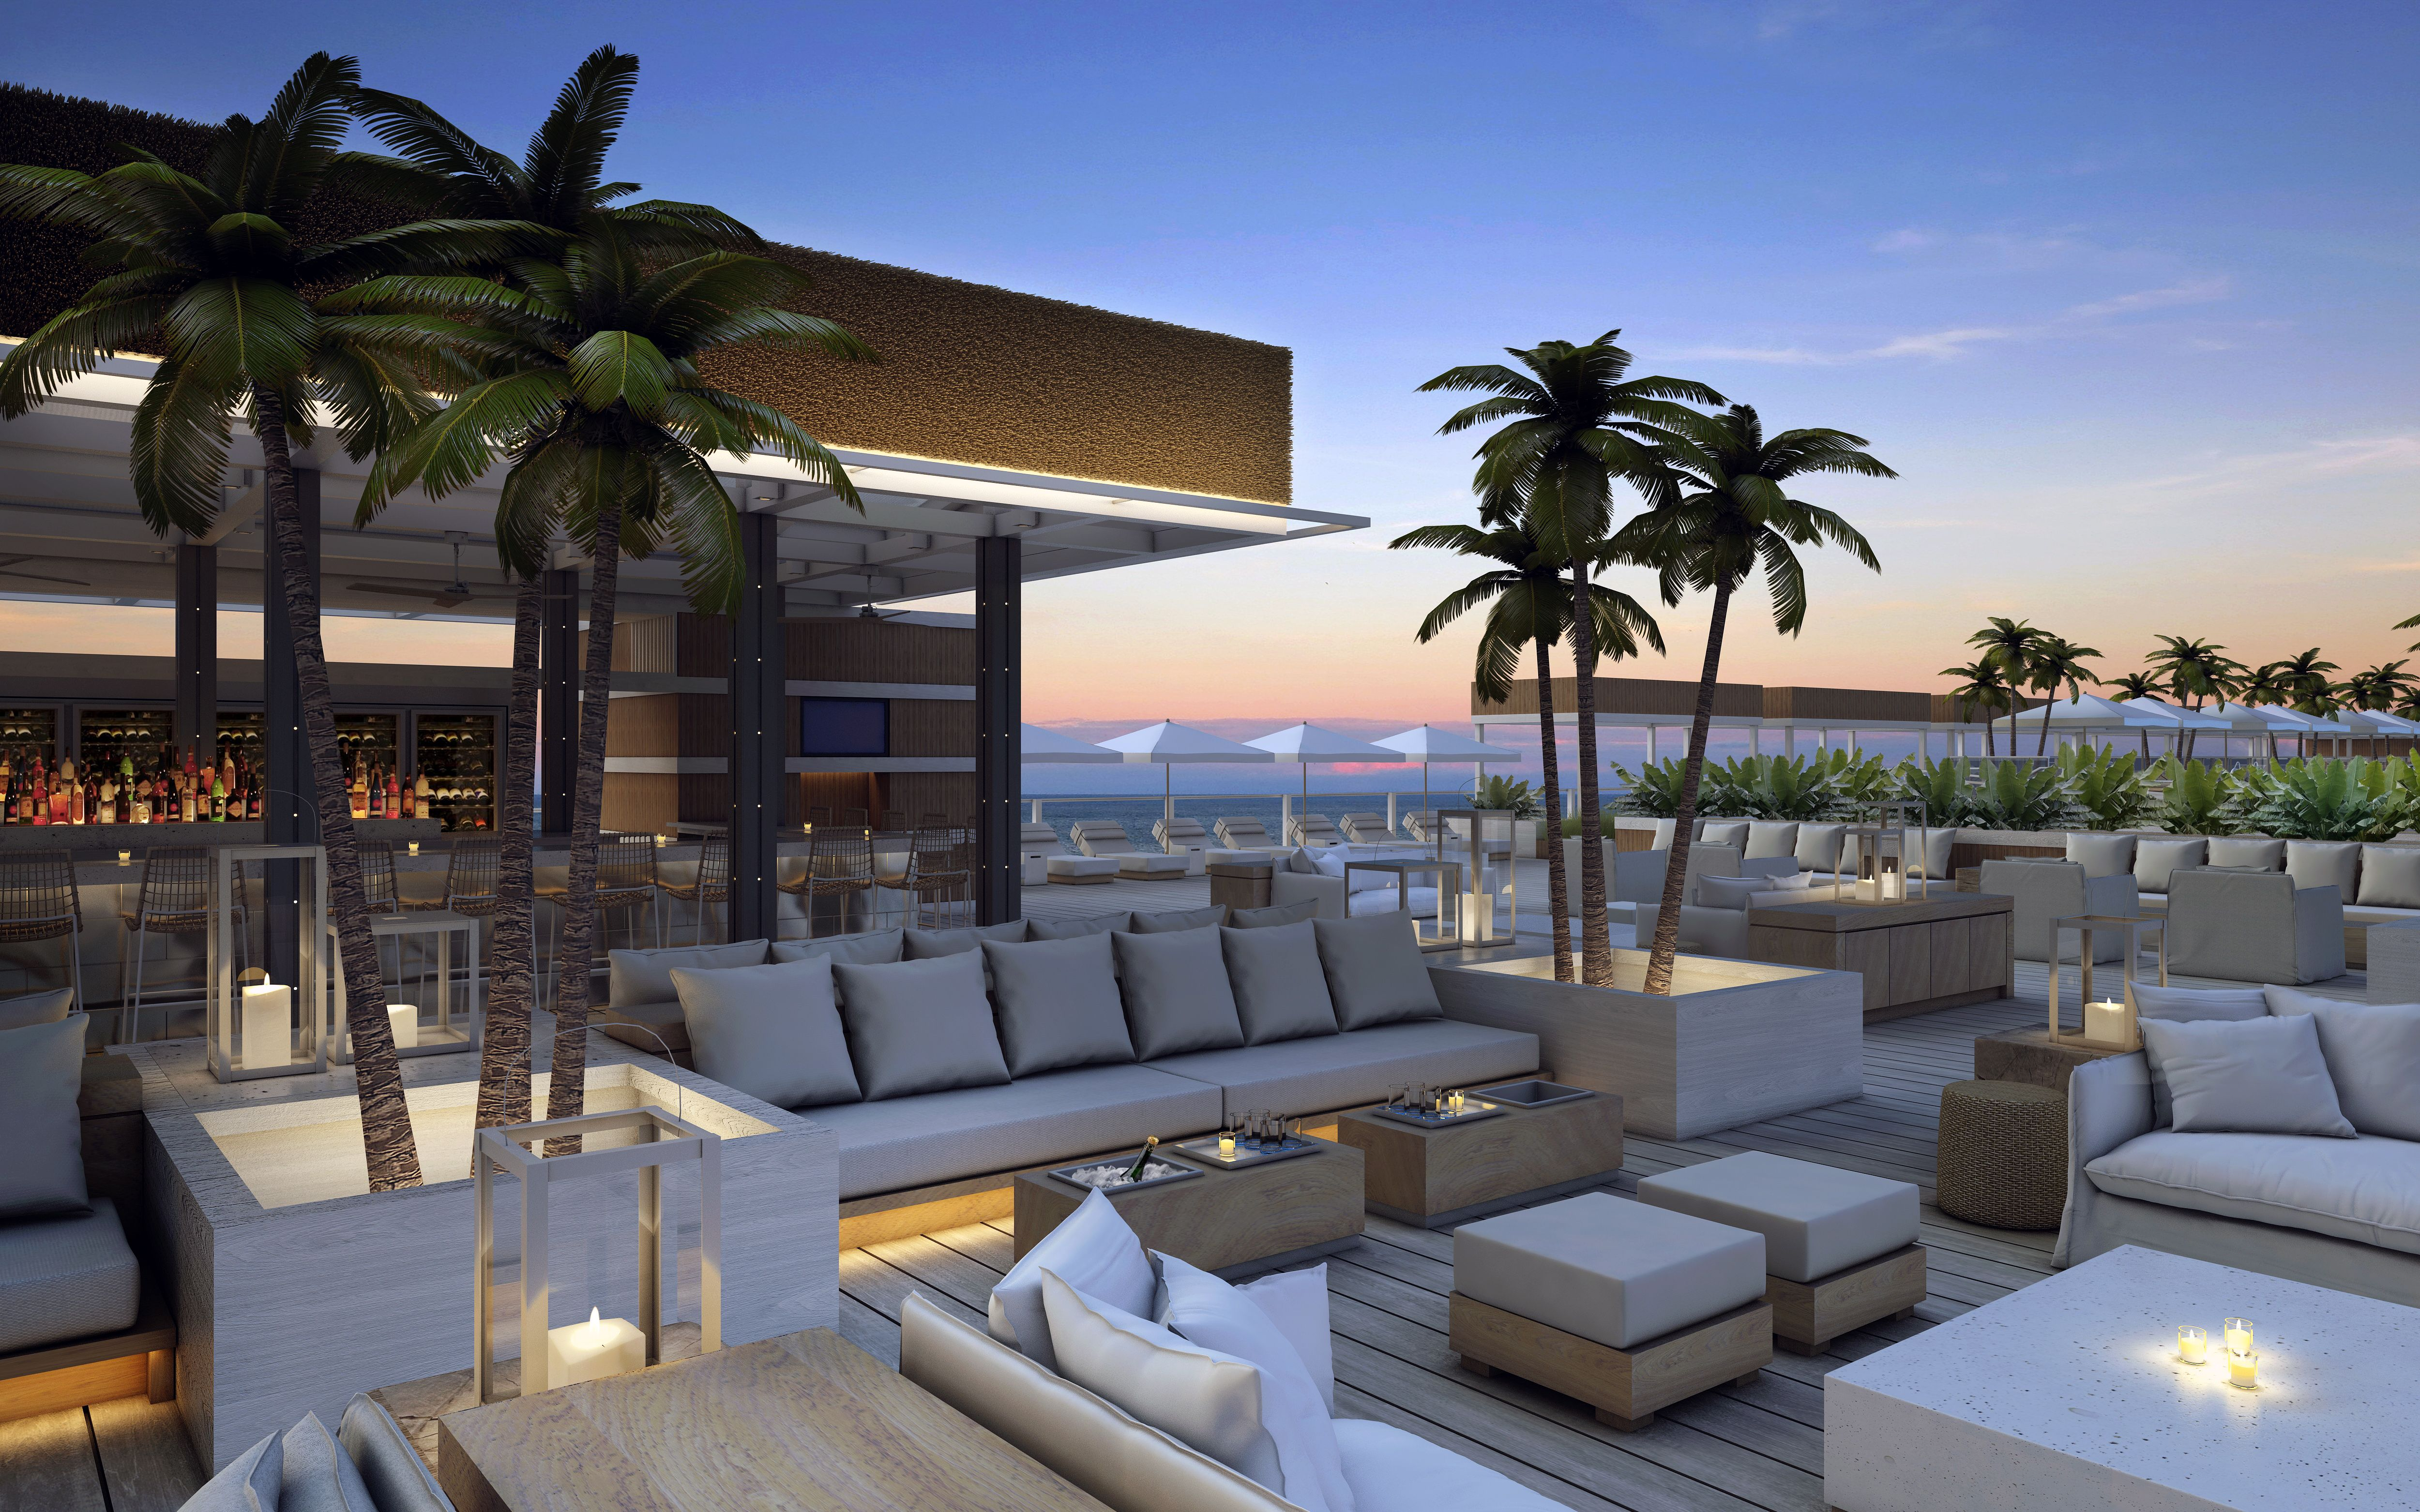 Another Gorgeous Miami Rooftop Lounge Hotspot Rooftop